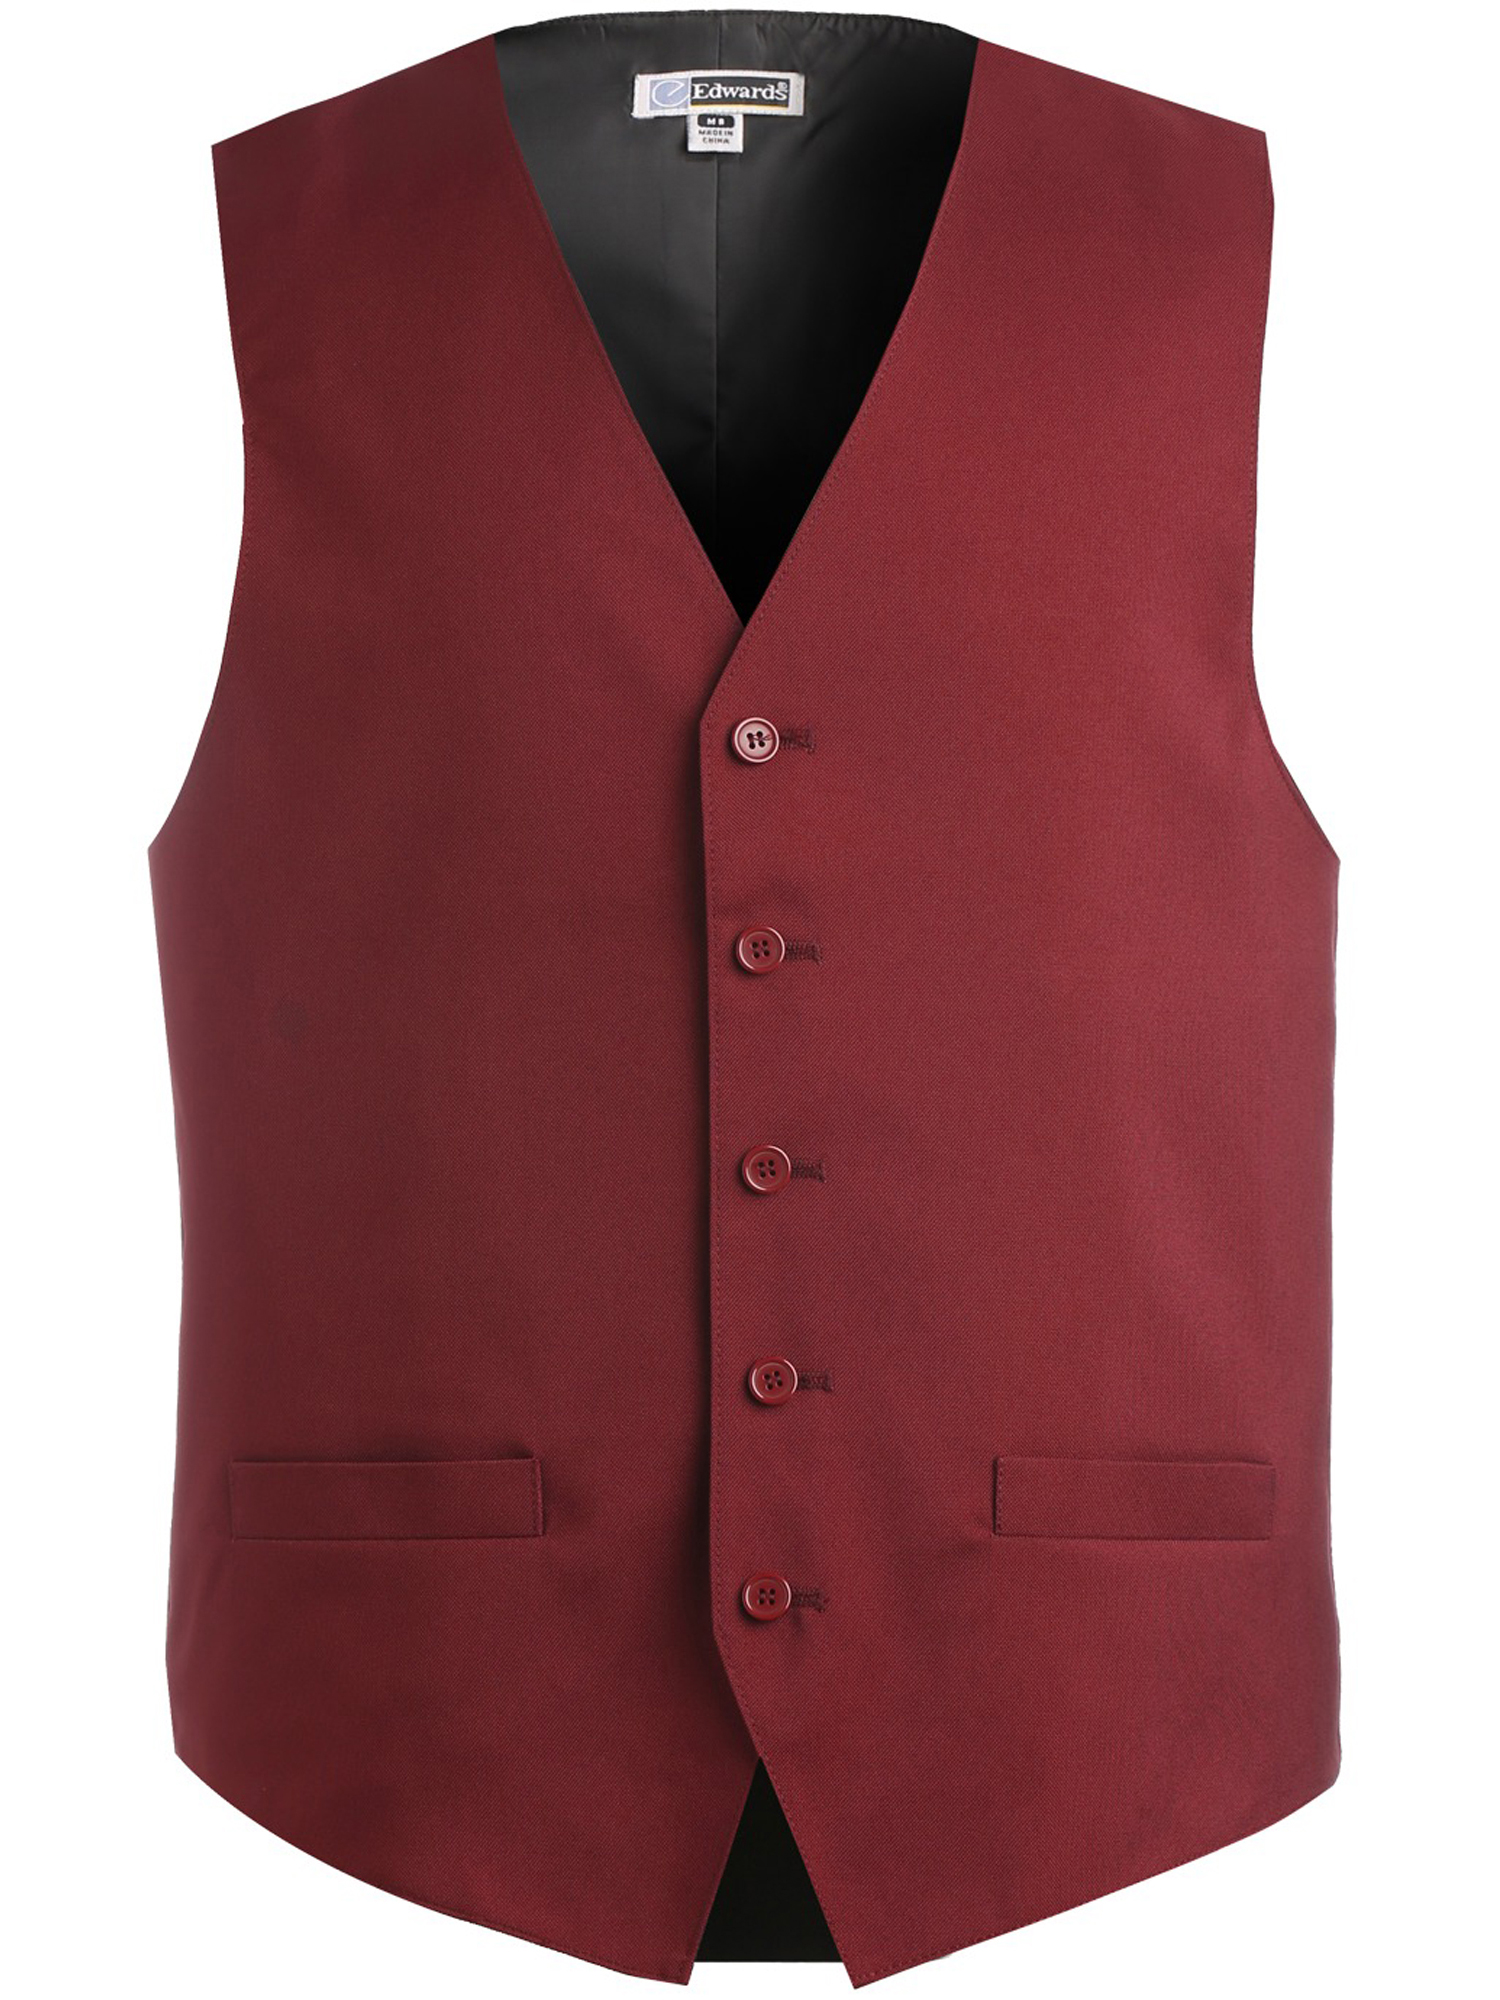 Ed Garments Men's Textured Weave Fully Lined Economy Vest, BURGUNDY, X-Large-Tall